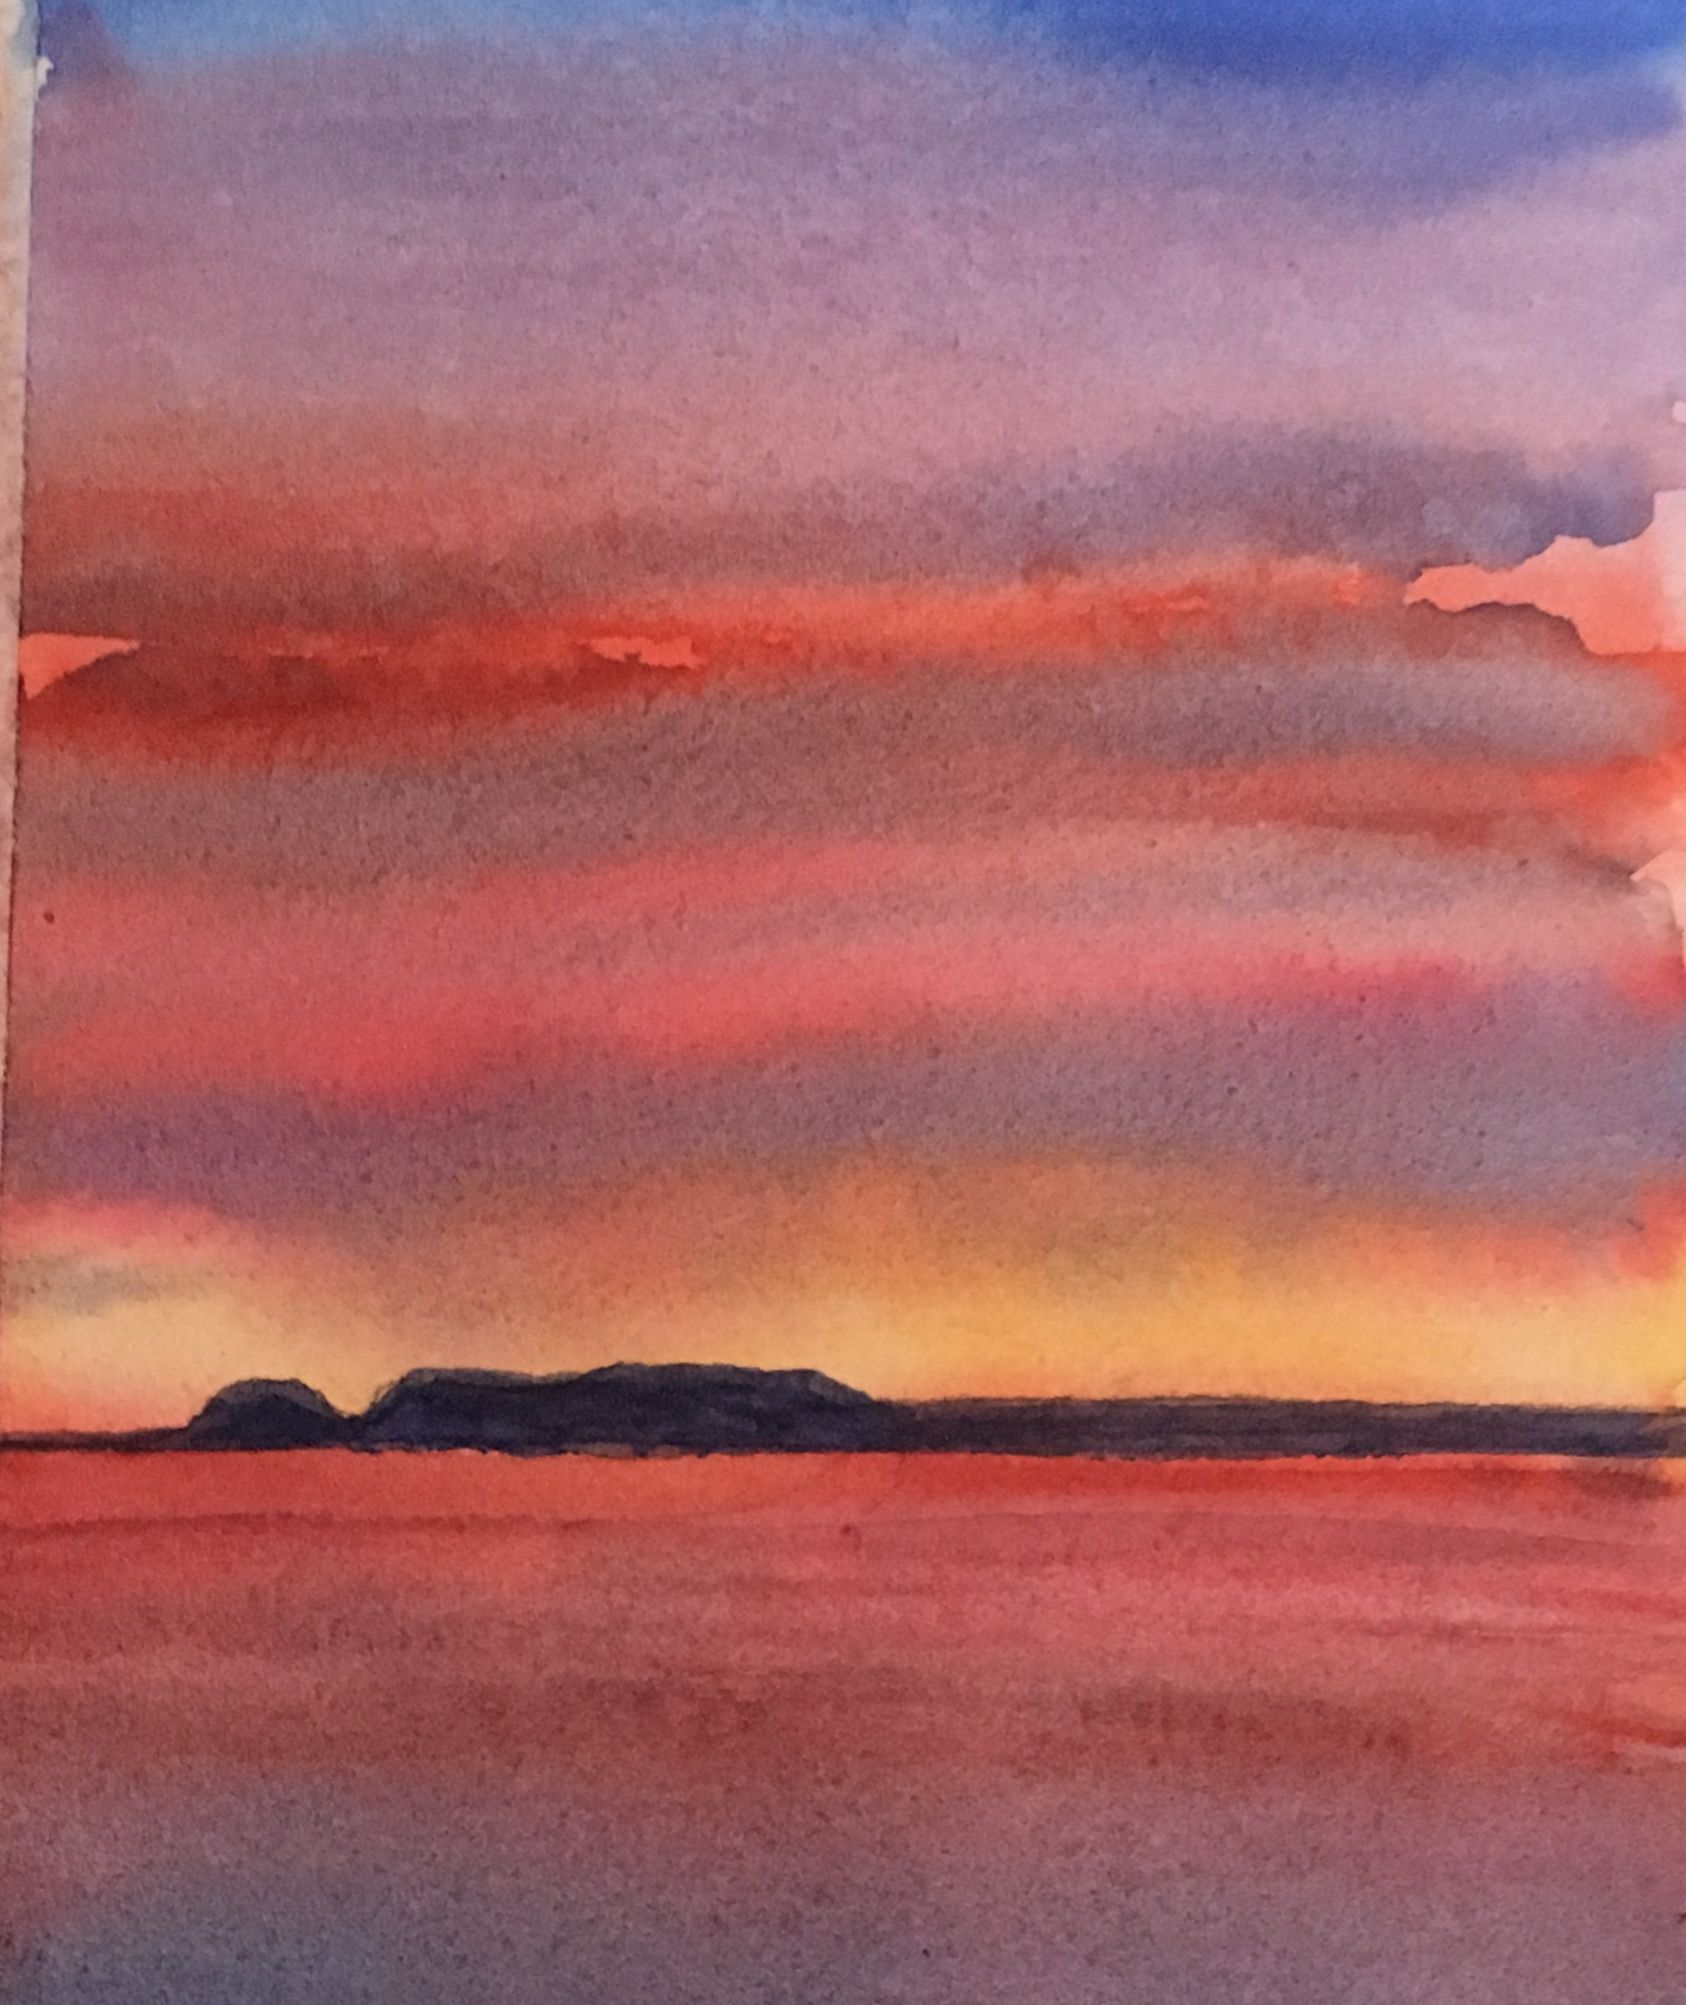 Giant Sunrise Watercolour Painting By Ken Crawford 5 X7